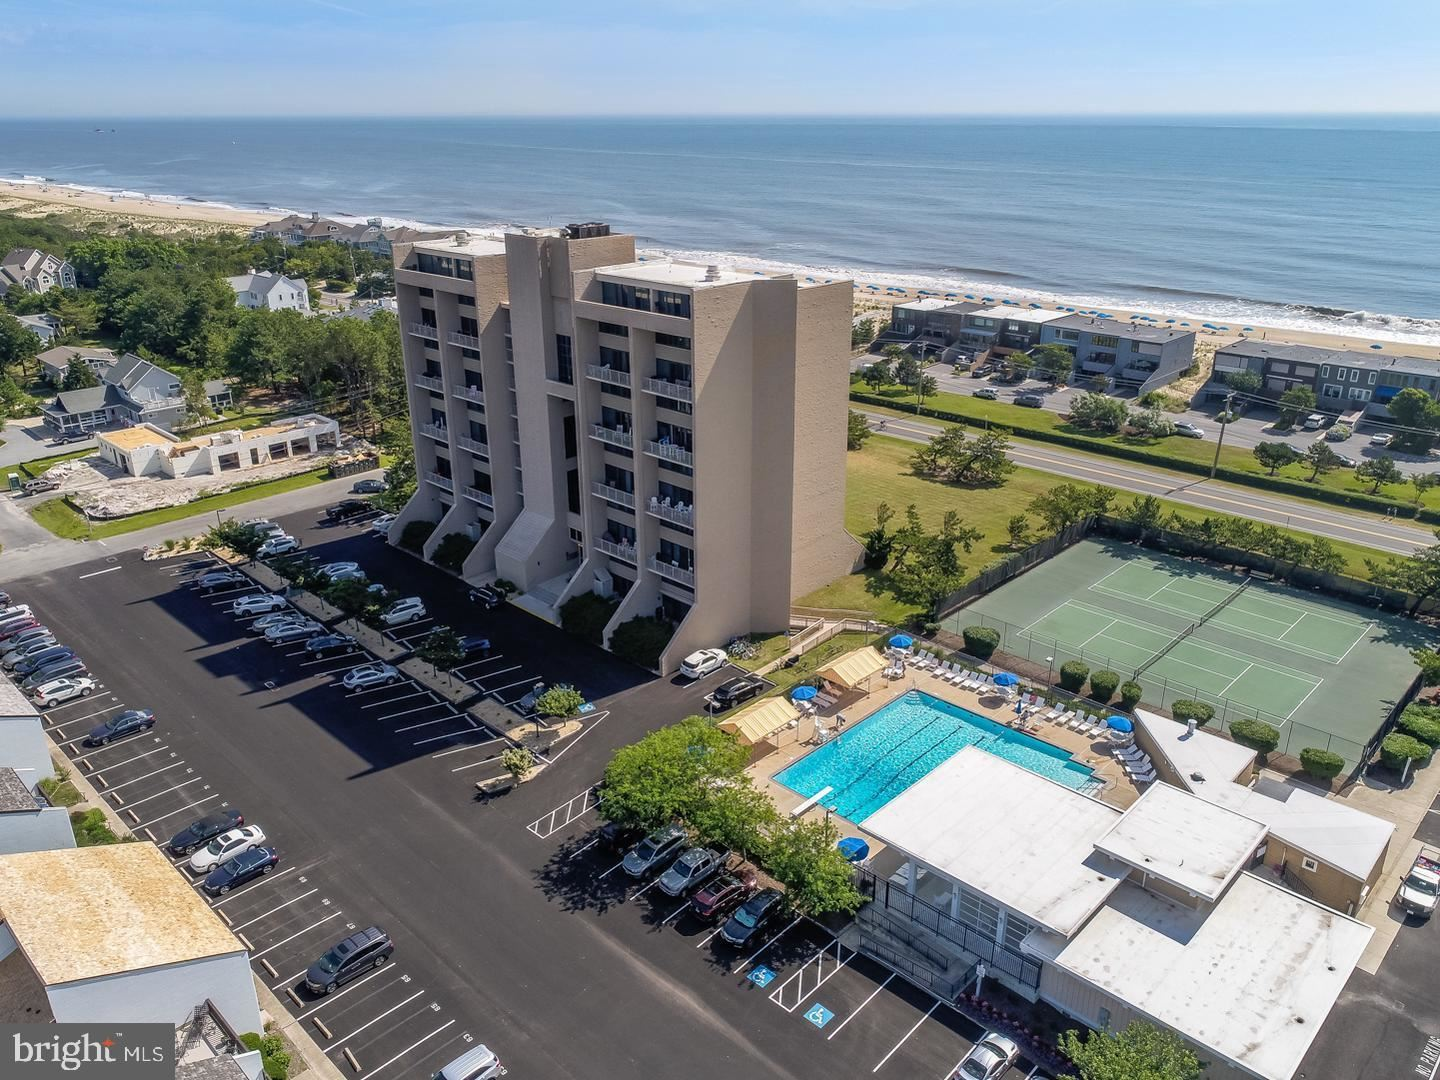 Photo of 21 OCEAN DR #101, REHOBOTH BEACH, DE 19971 (MLS # DESU170050)